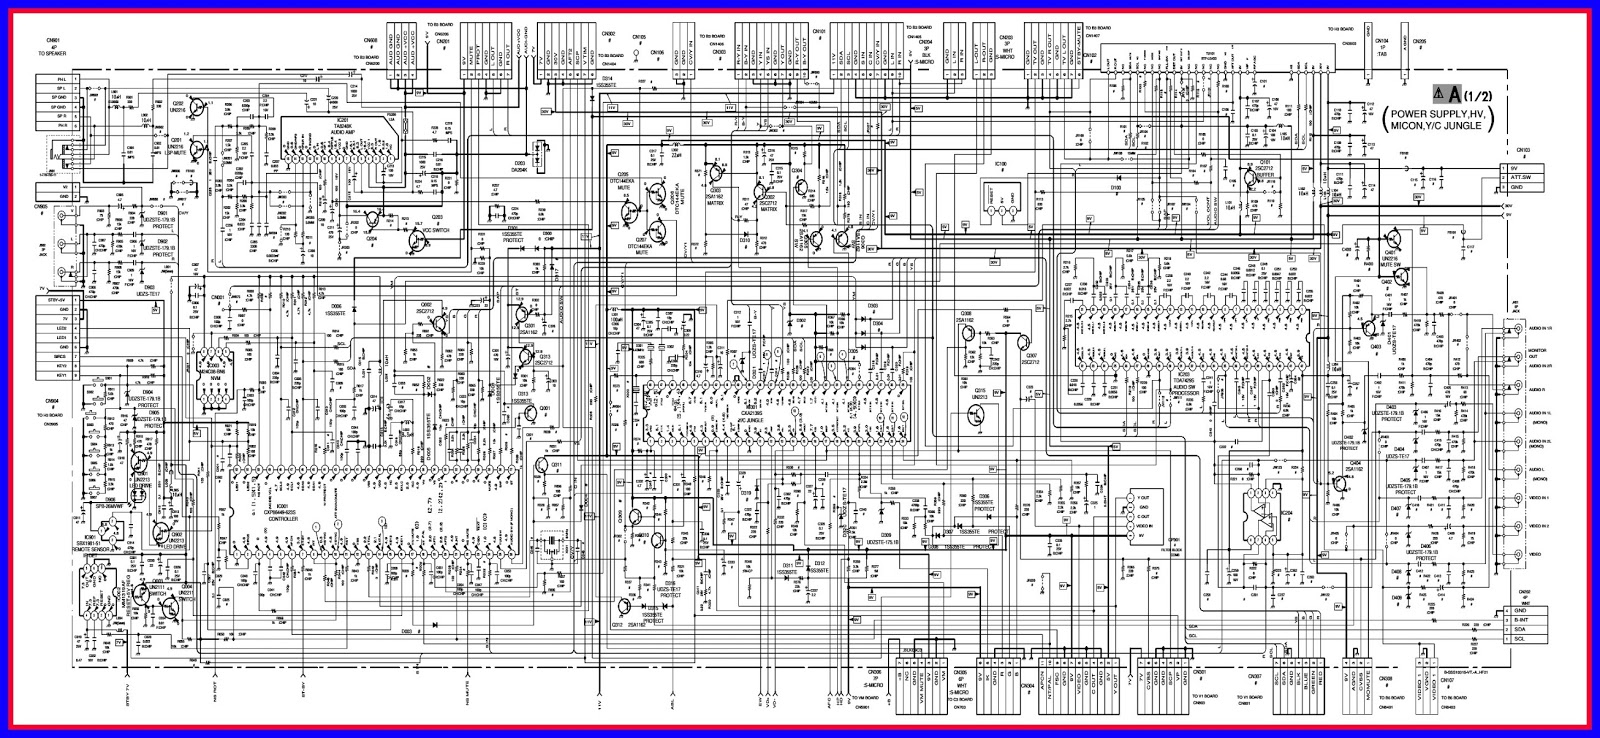 medium resolution of sony tv diagram wiring diagram for light switch u2022 sony crt tv schematic diagram sony